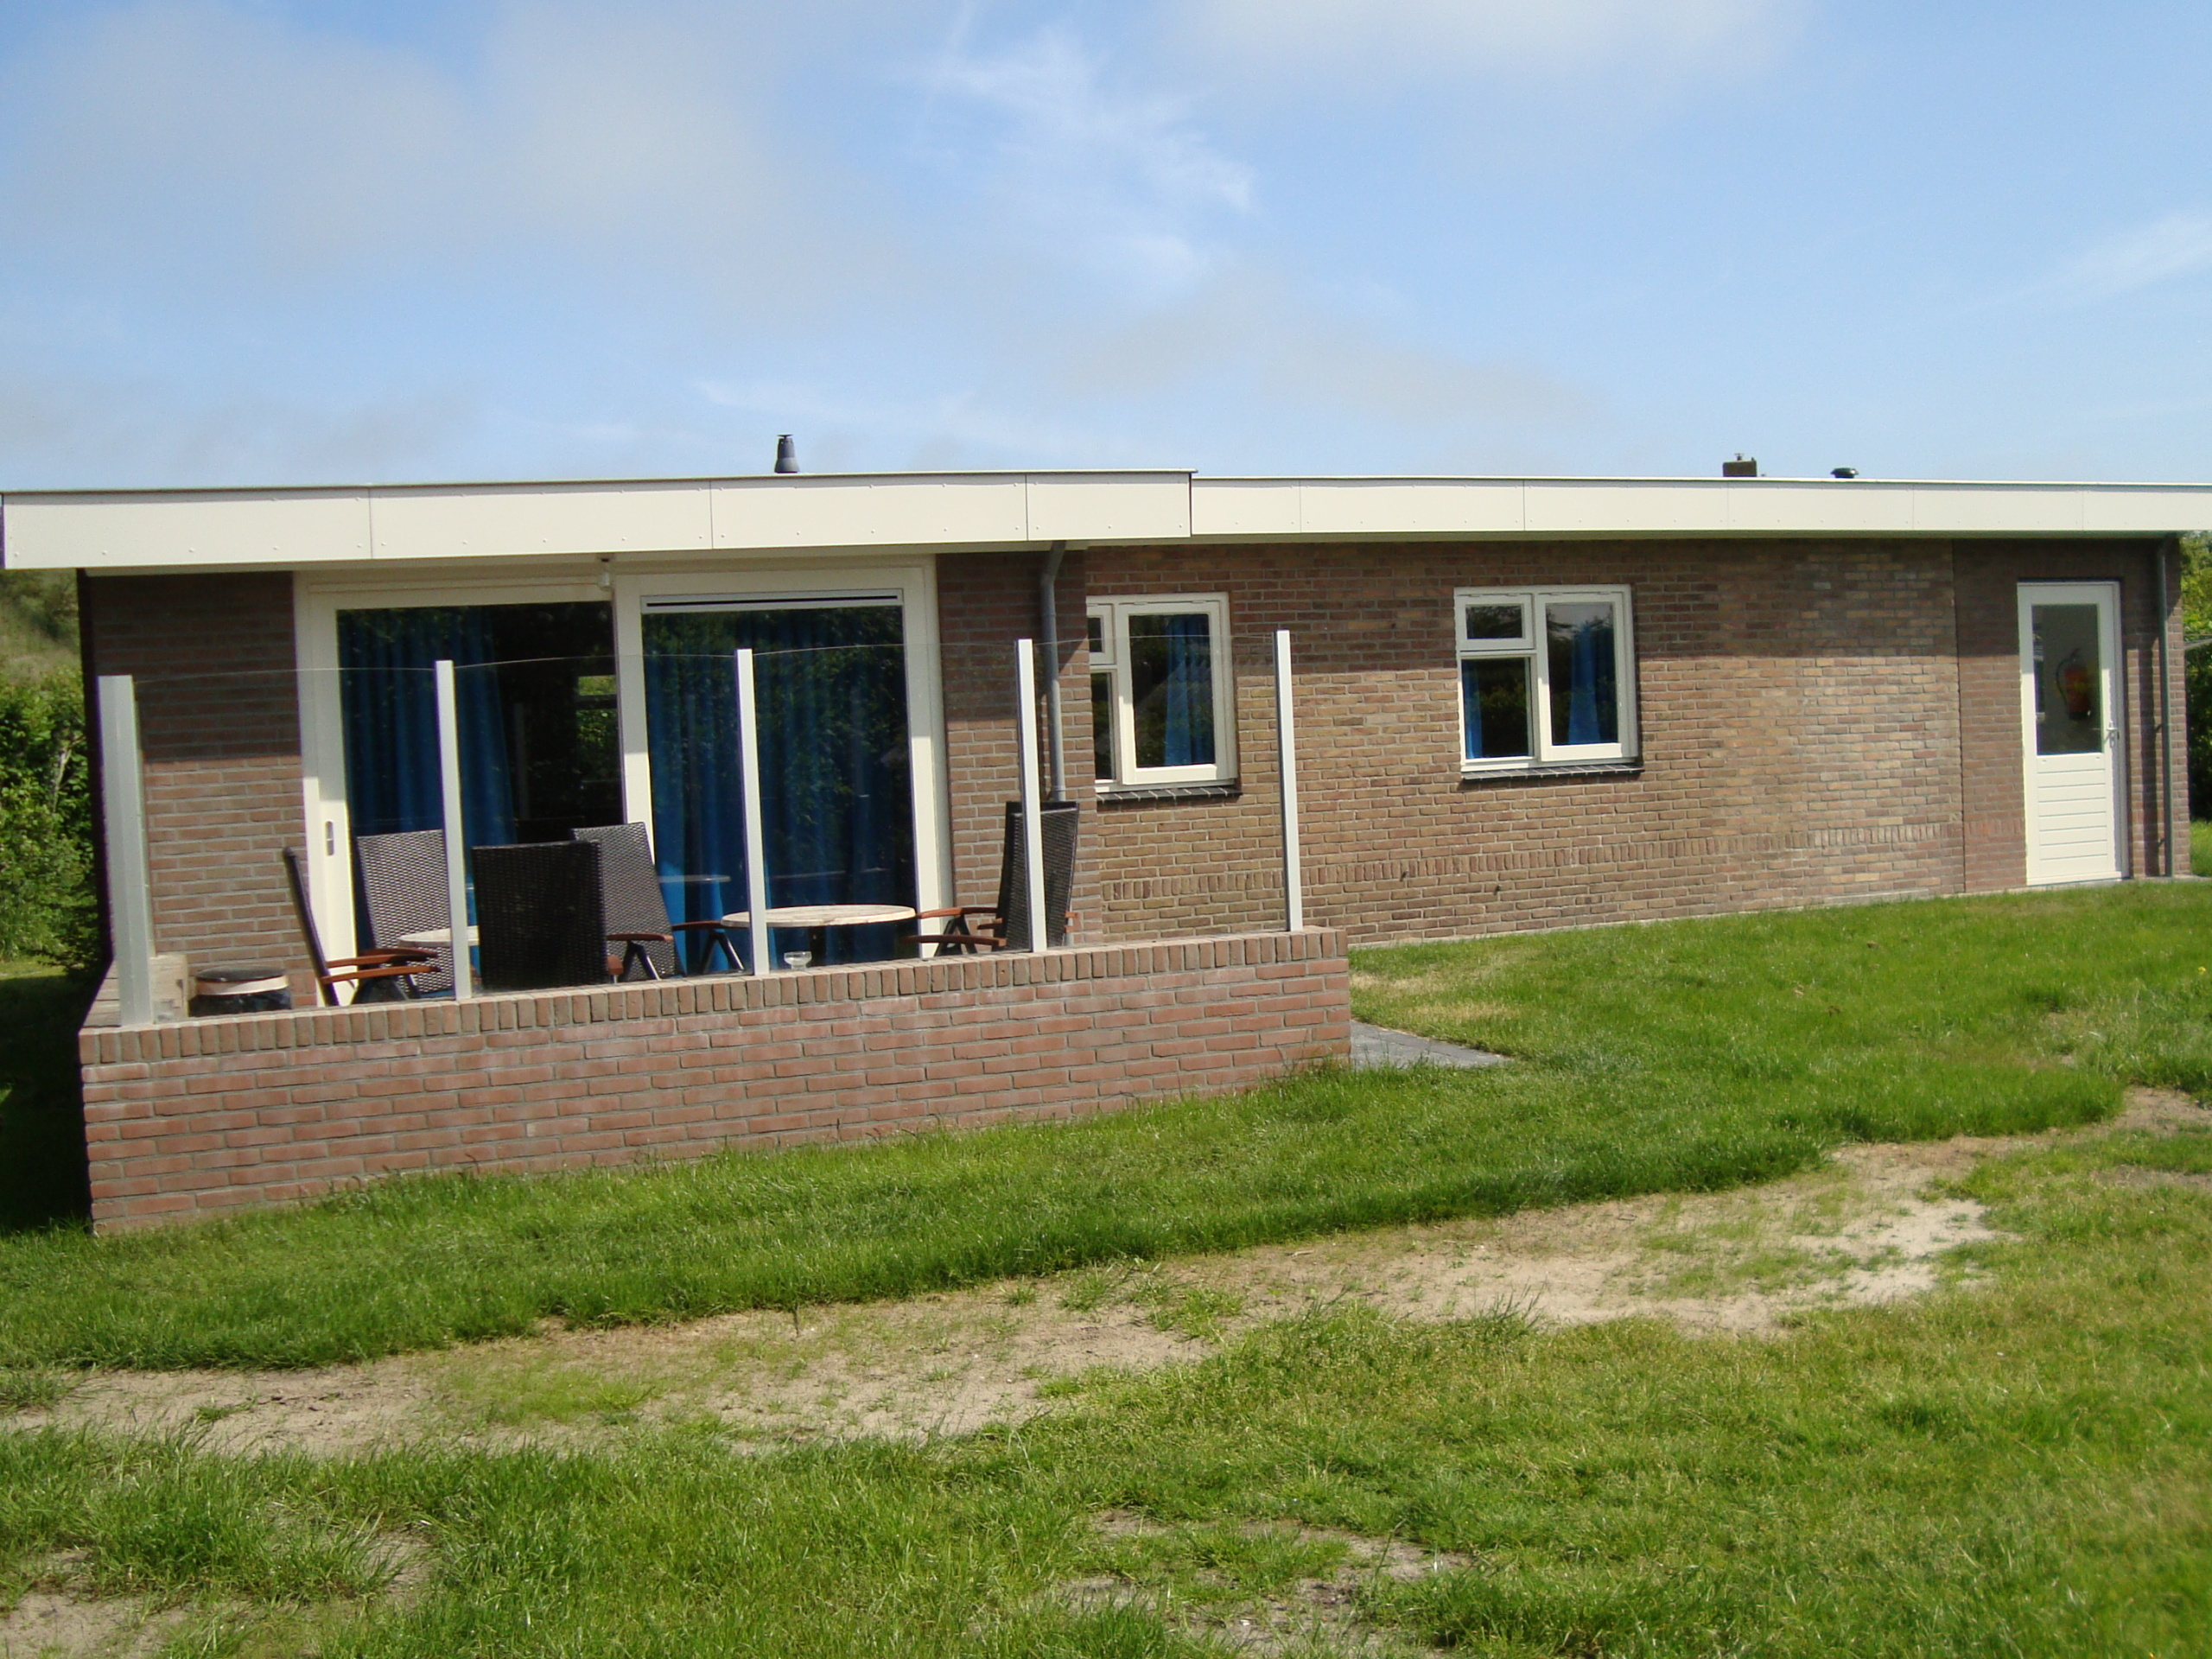 Comfortable holiday home with a panoramic view, located at the foot of the dunes of the De Slufter